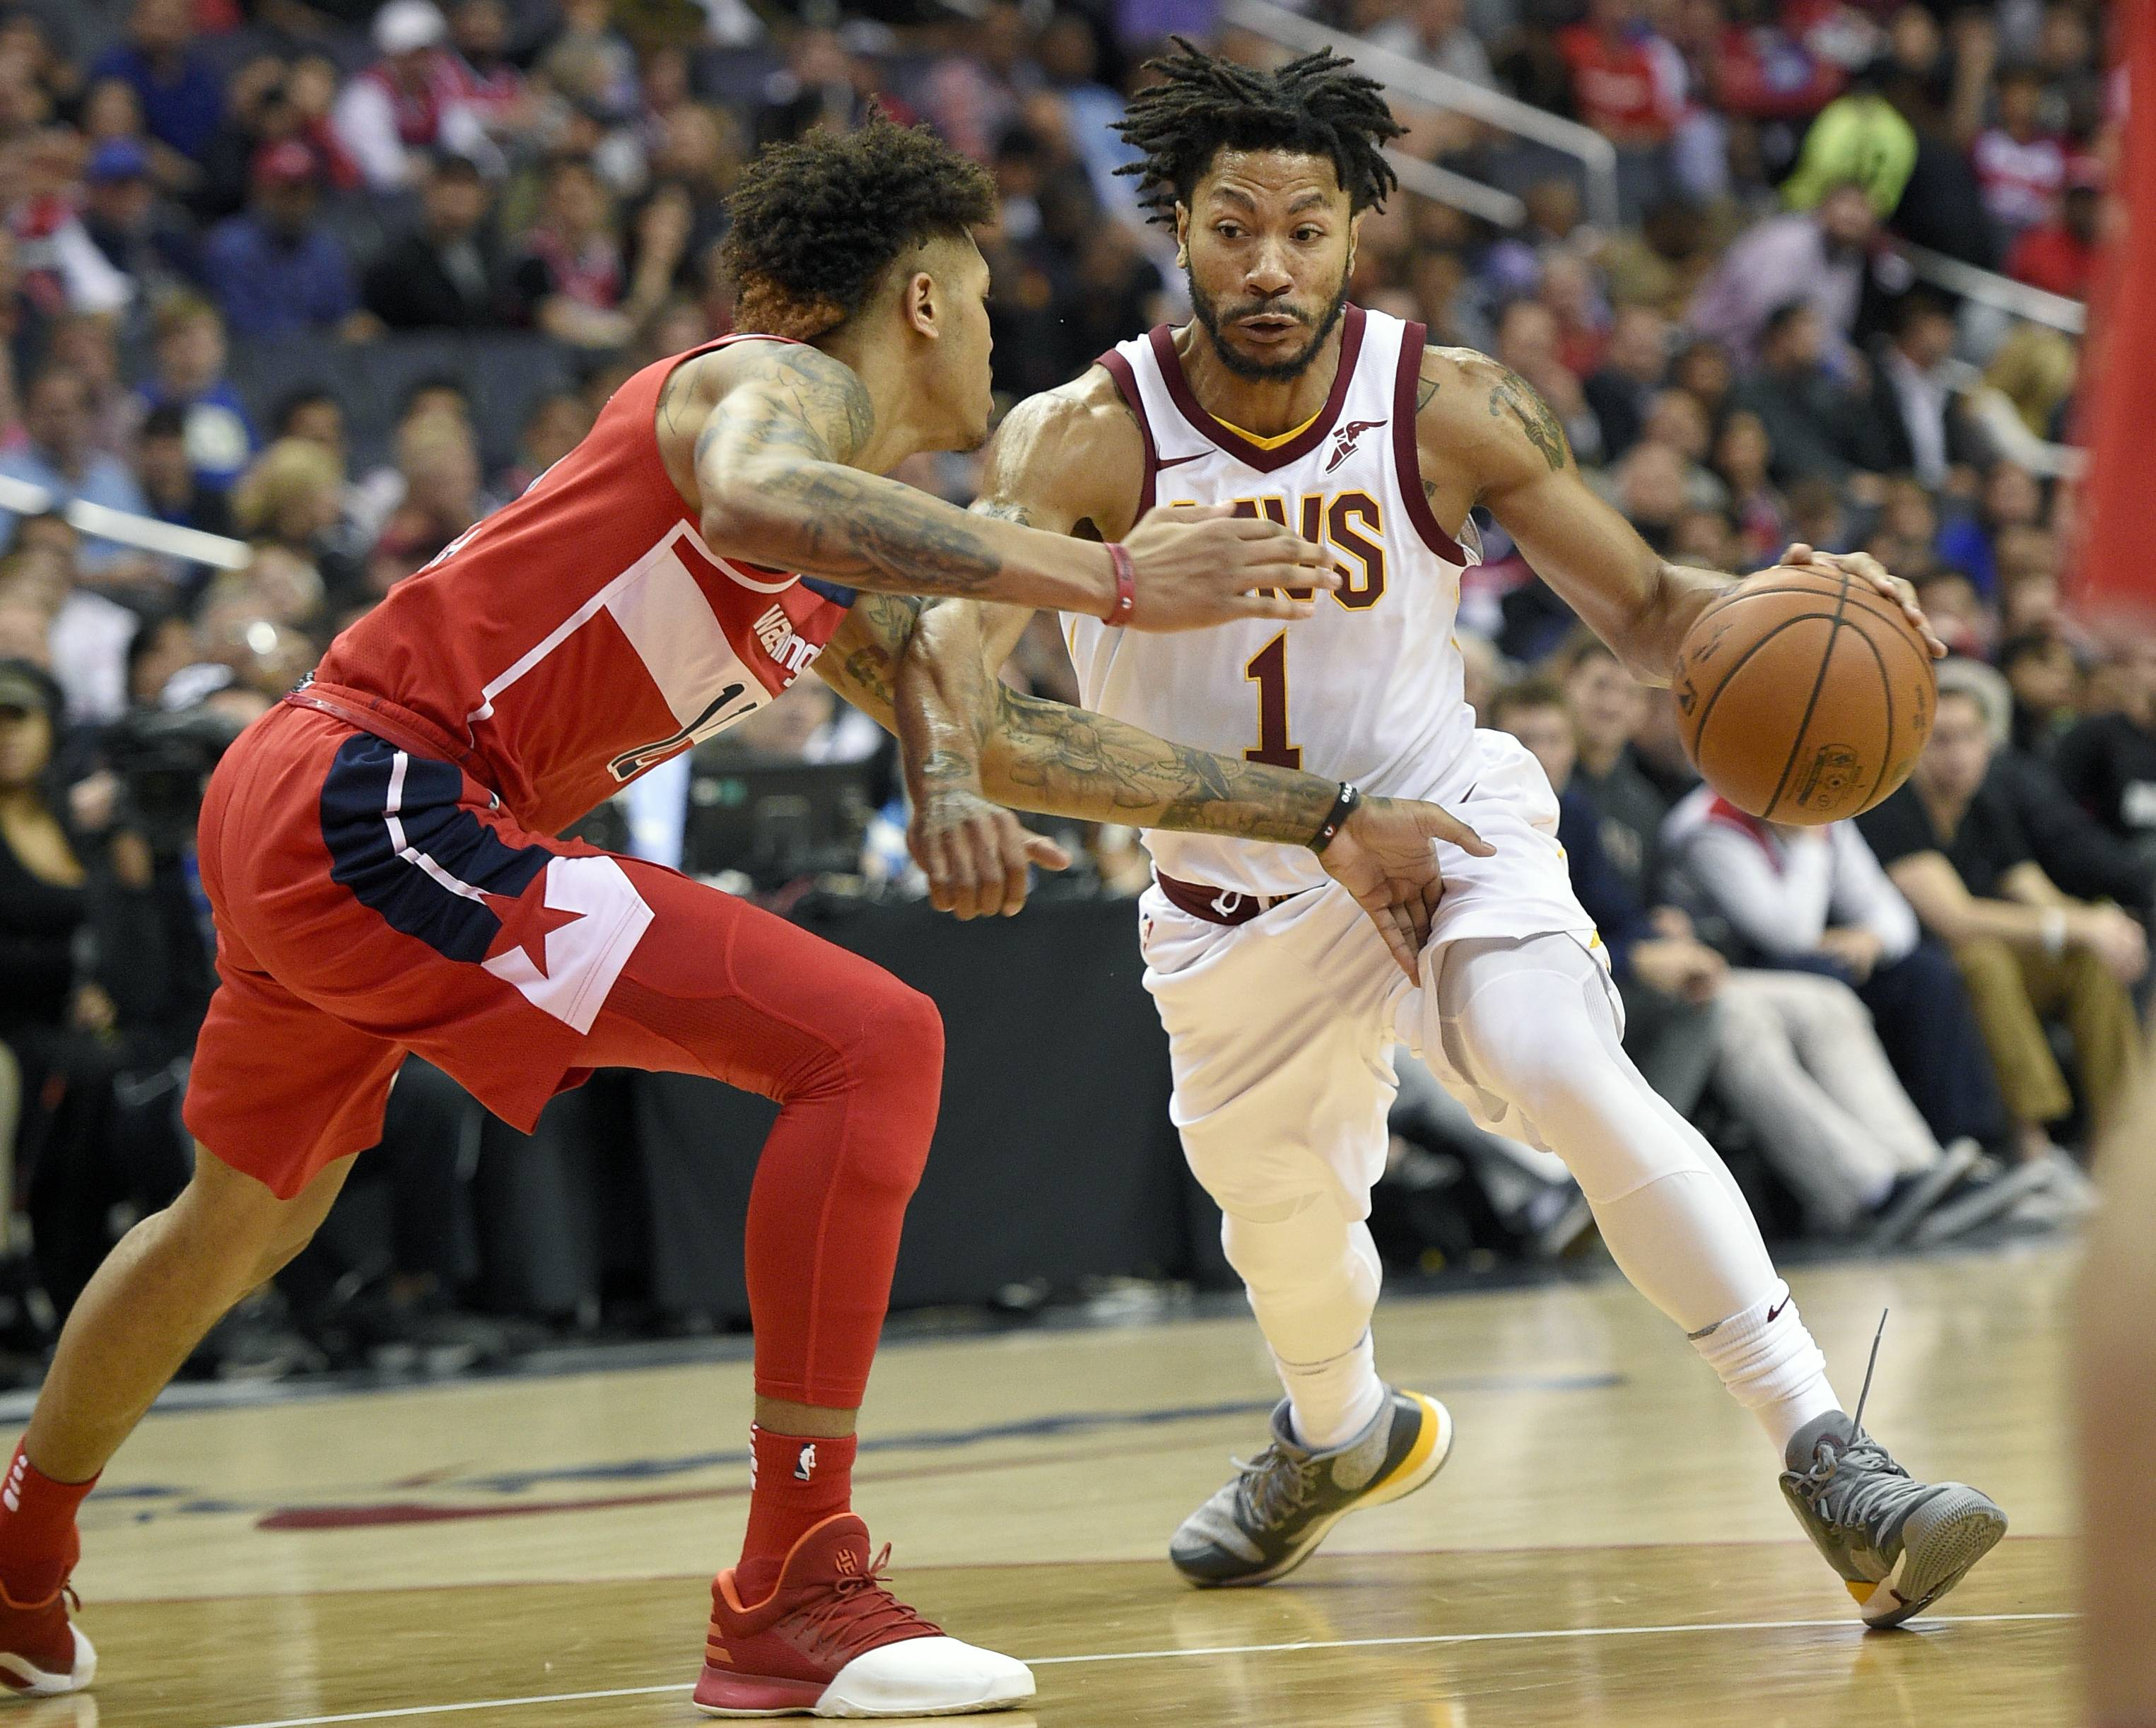 FILE - In this Nov. 3, 2017, file photo, Cleveland Cavaliers' Derrick Rose (1) dribbles against Washington Wizards forward Kelly Oubre Jr., left, during the first half of an NBA basketball game in Washington. Cavaliers coach Tyronn Lue says the team's communication with embattled point guard Rose has been positive. Rose is away from the team because of a personal matter. He also has been sidelined by a sprained left ankle.